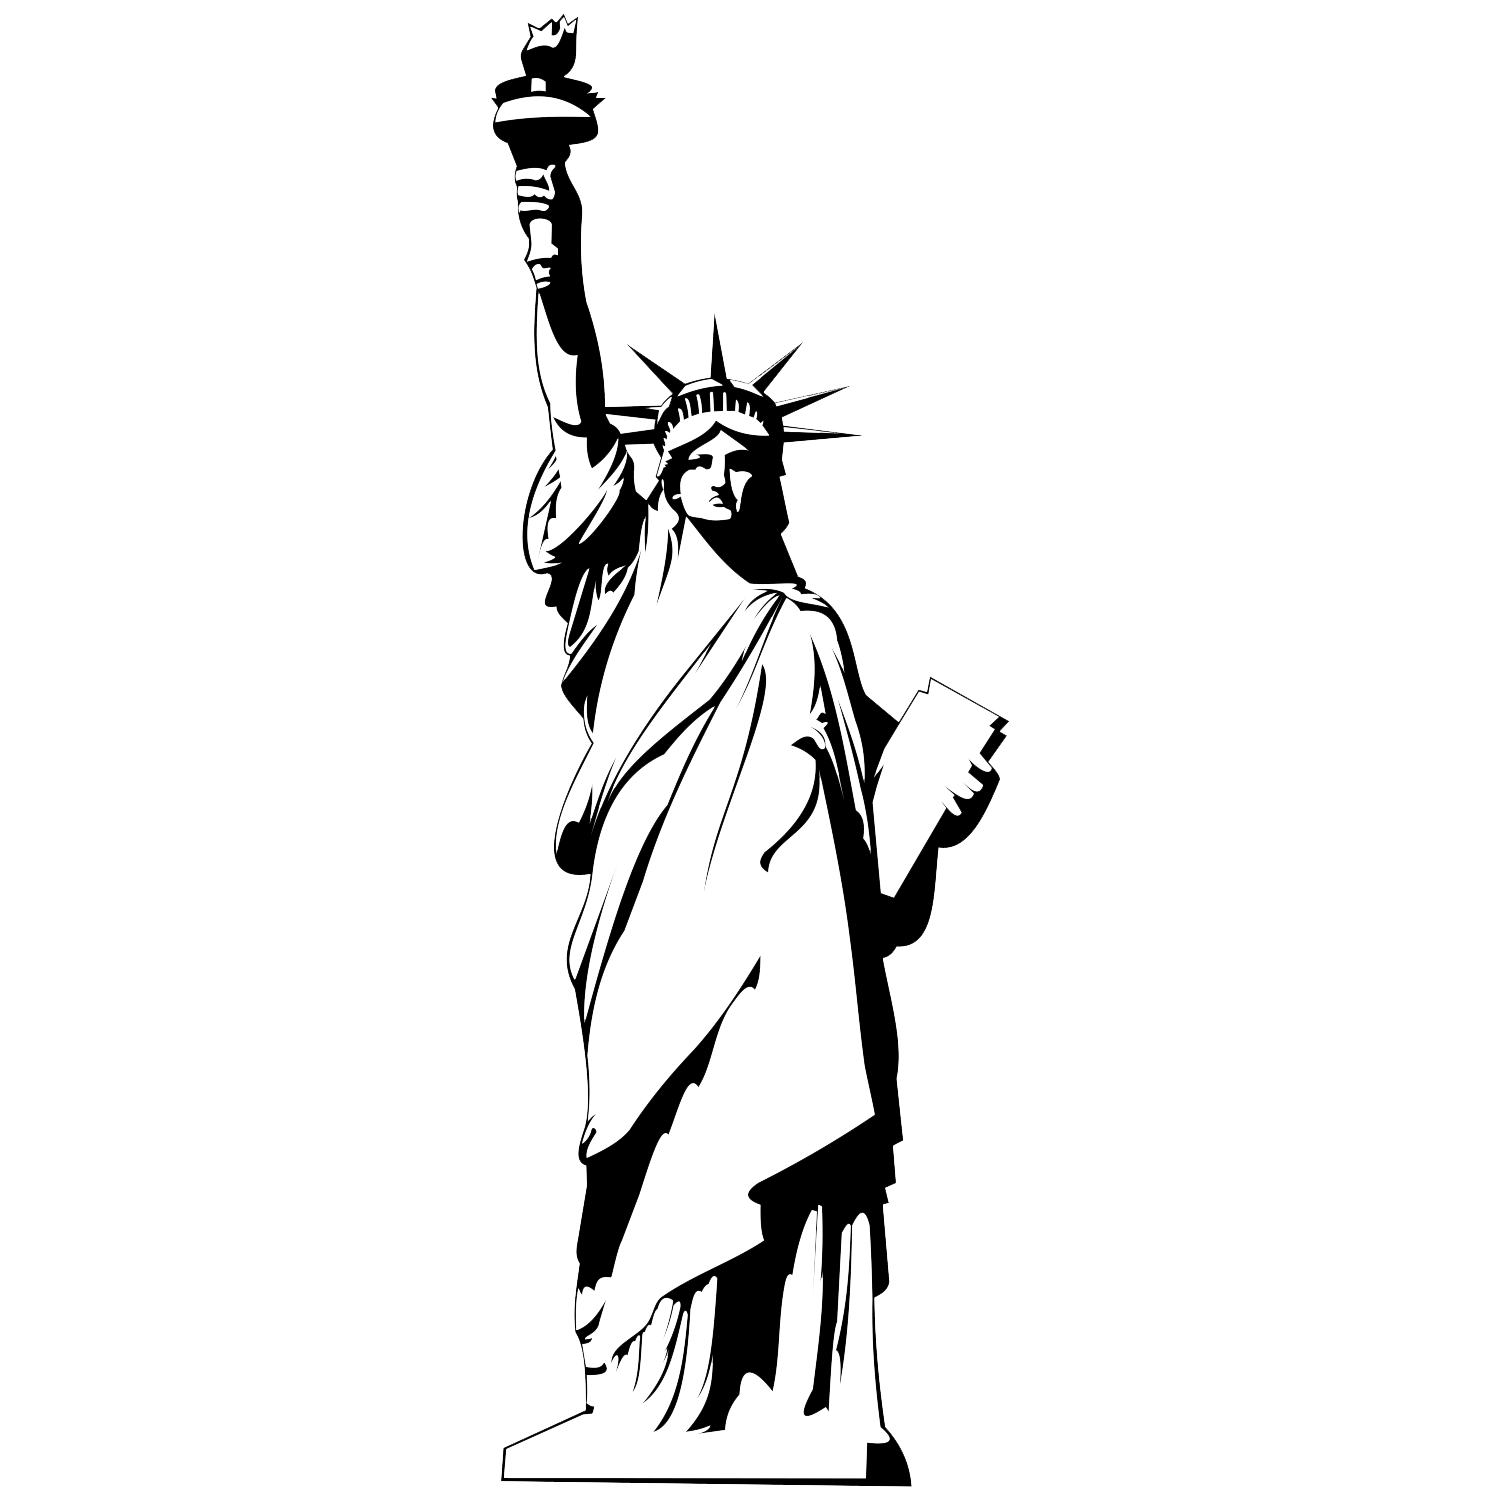 Statue Of Liberty Image PNG Image